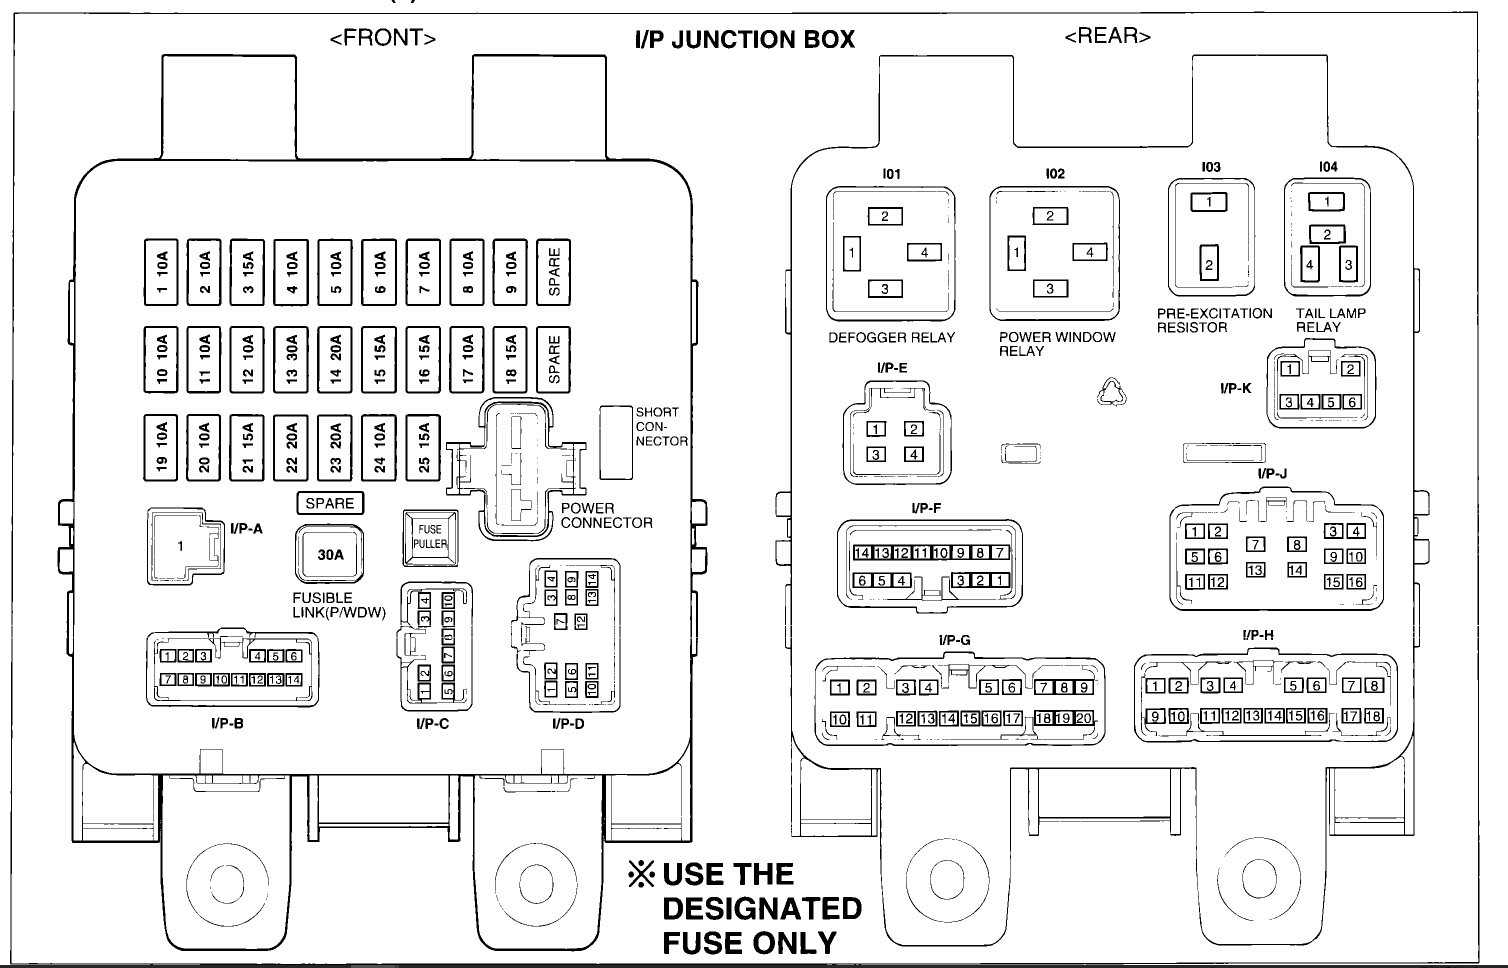 2003 Elantra Fuse Box - Honda Accord 2005 Fuse Box Diagram for Wiring  Diagram SchematicsWiring Diagram Schematics